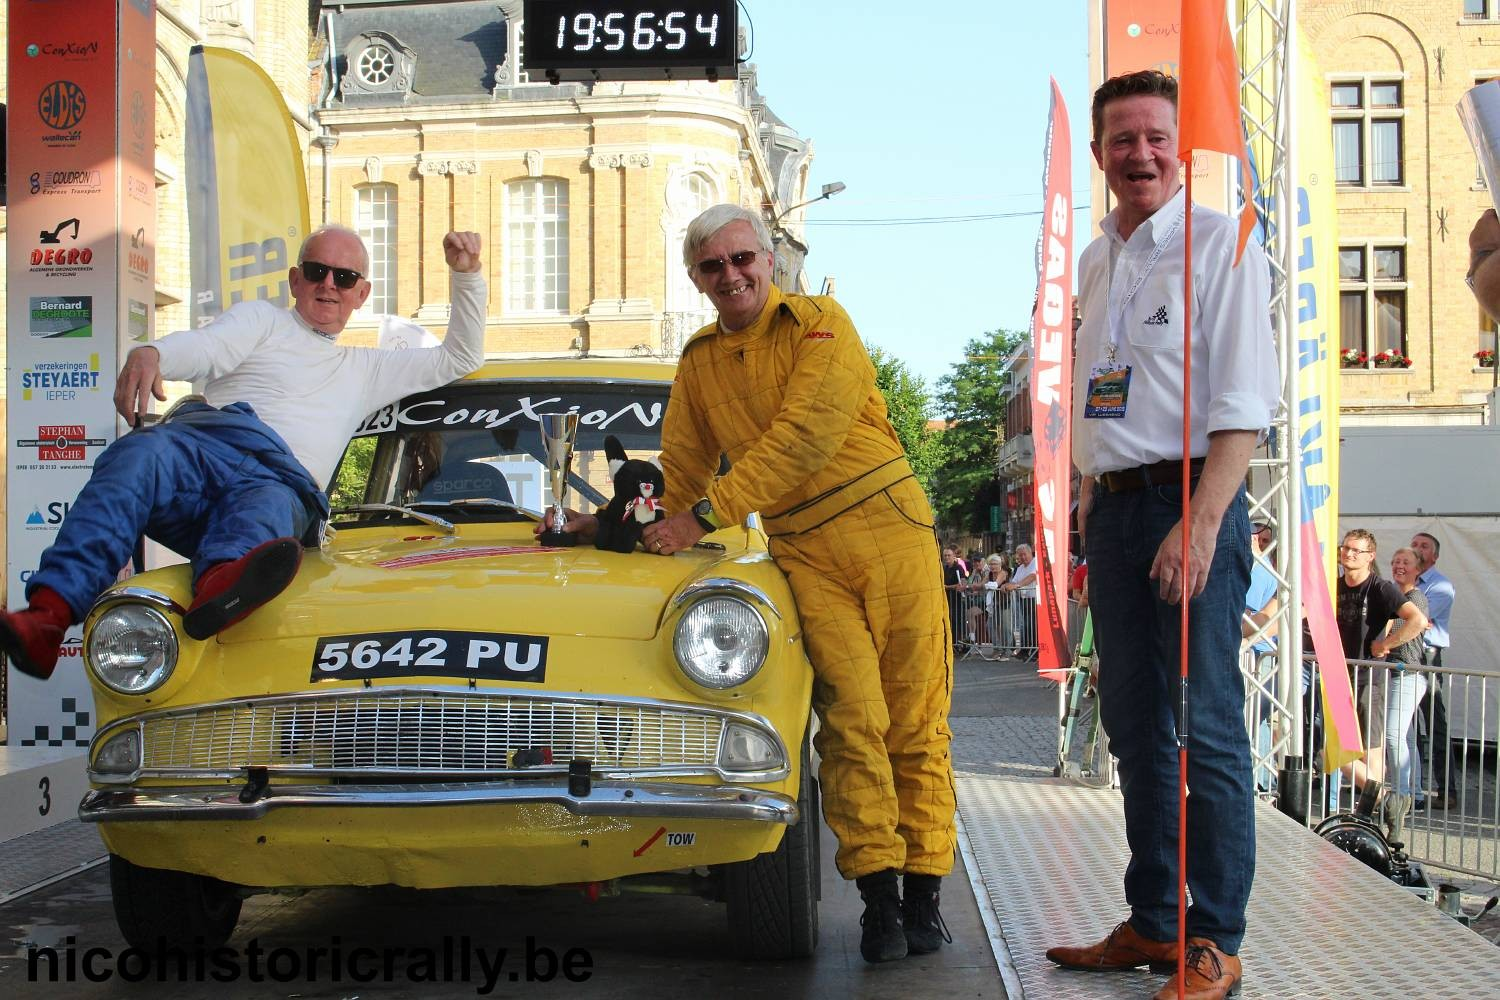 Foto-album podium Ypres HISTORIC RALLY is toegevoegd.